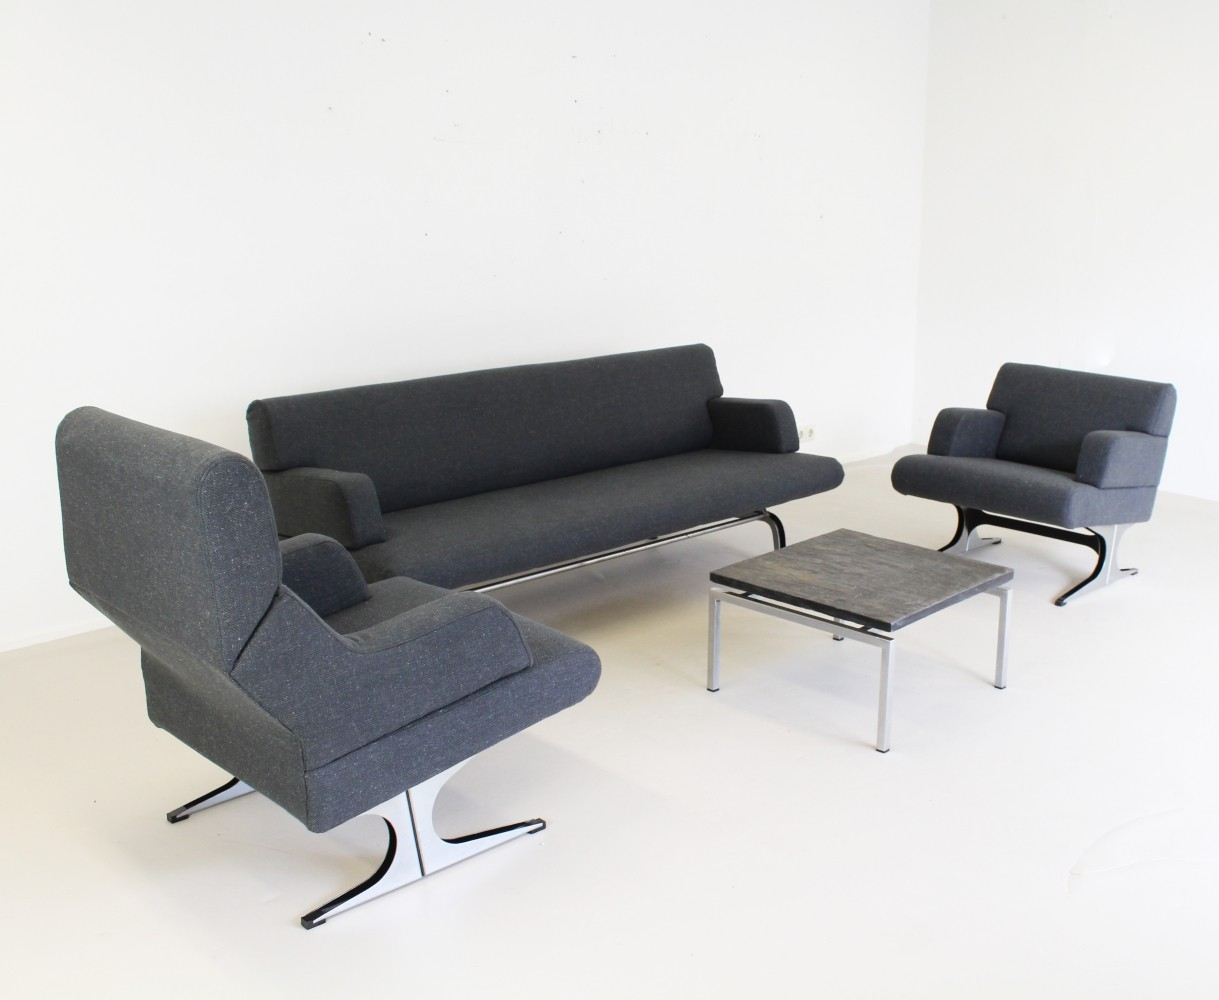 BR11 + SZ11 + SZ12 seating group by Martin Visser for Spectrum, 1960s